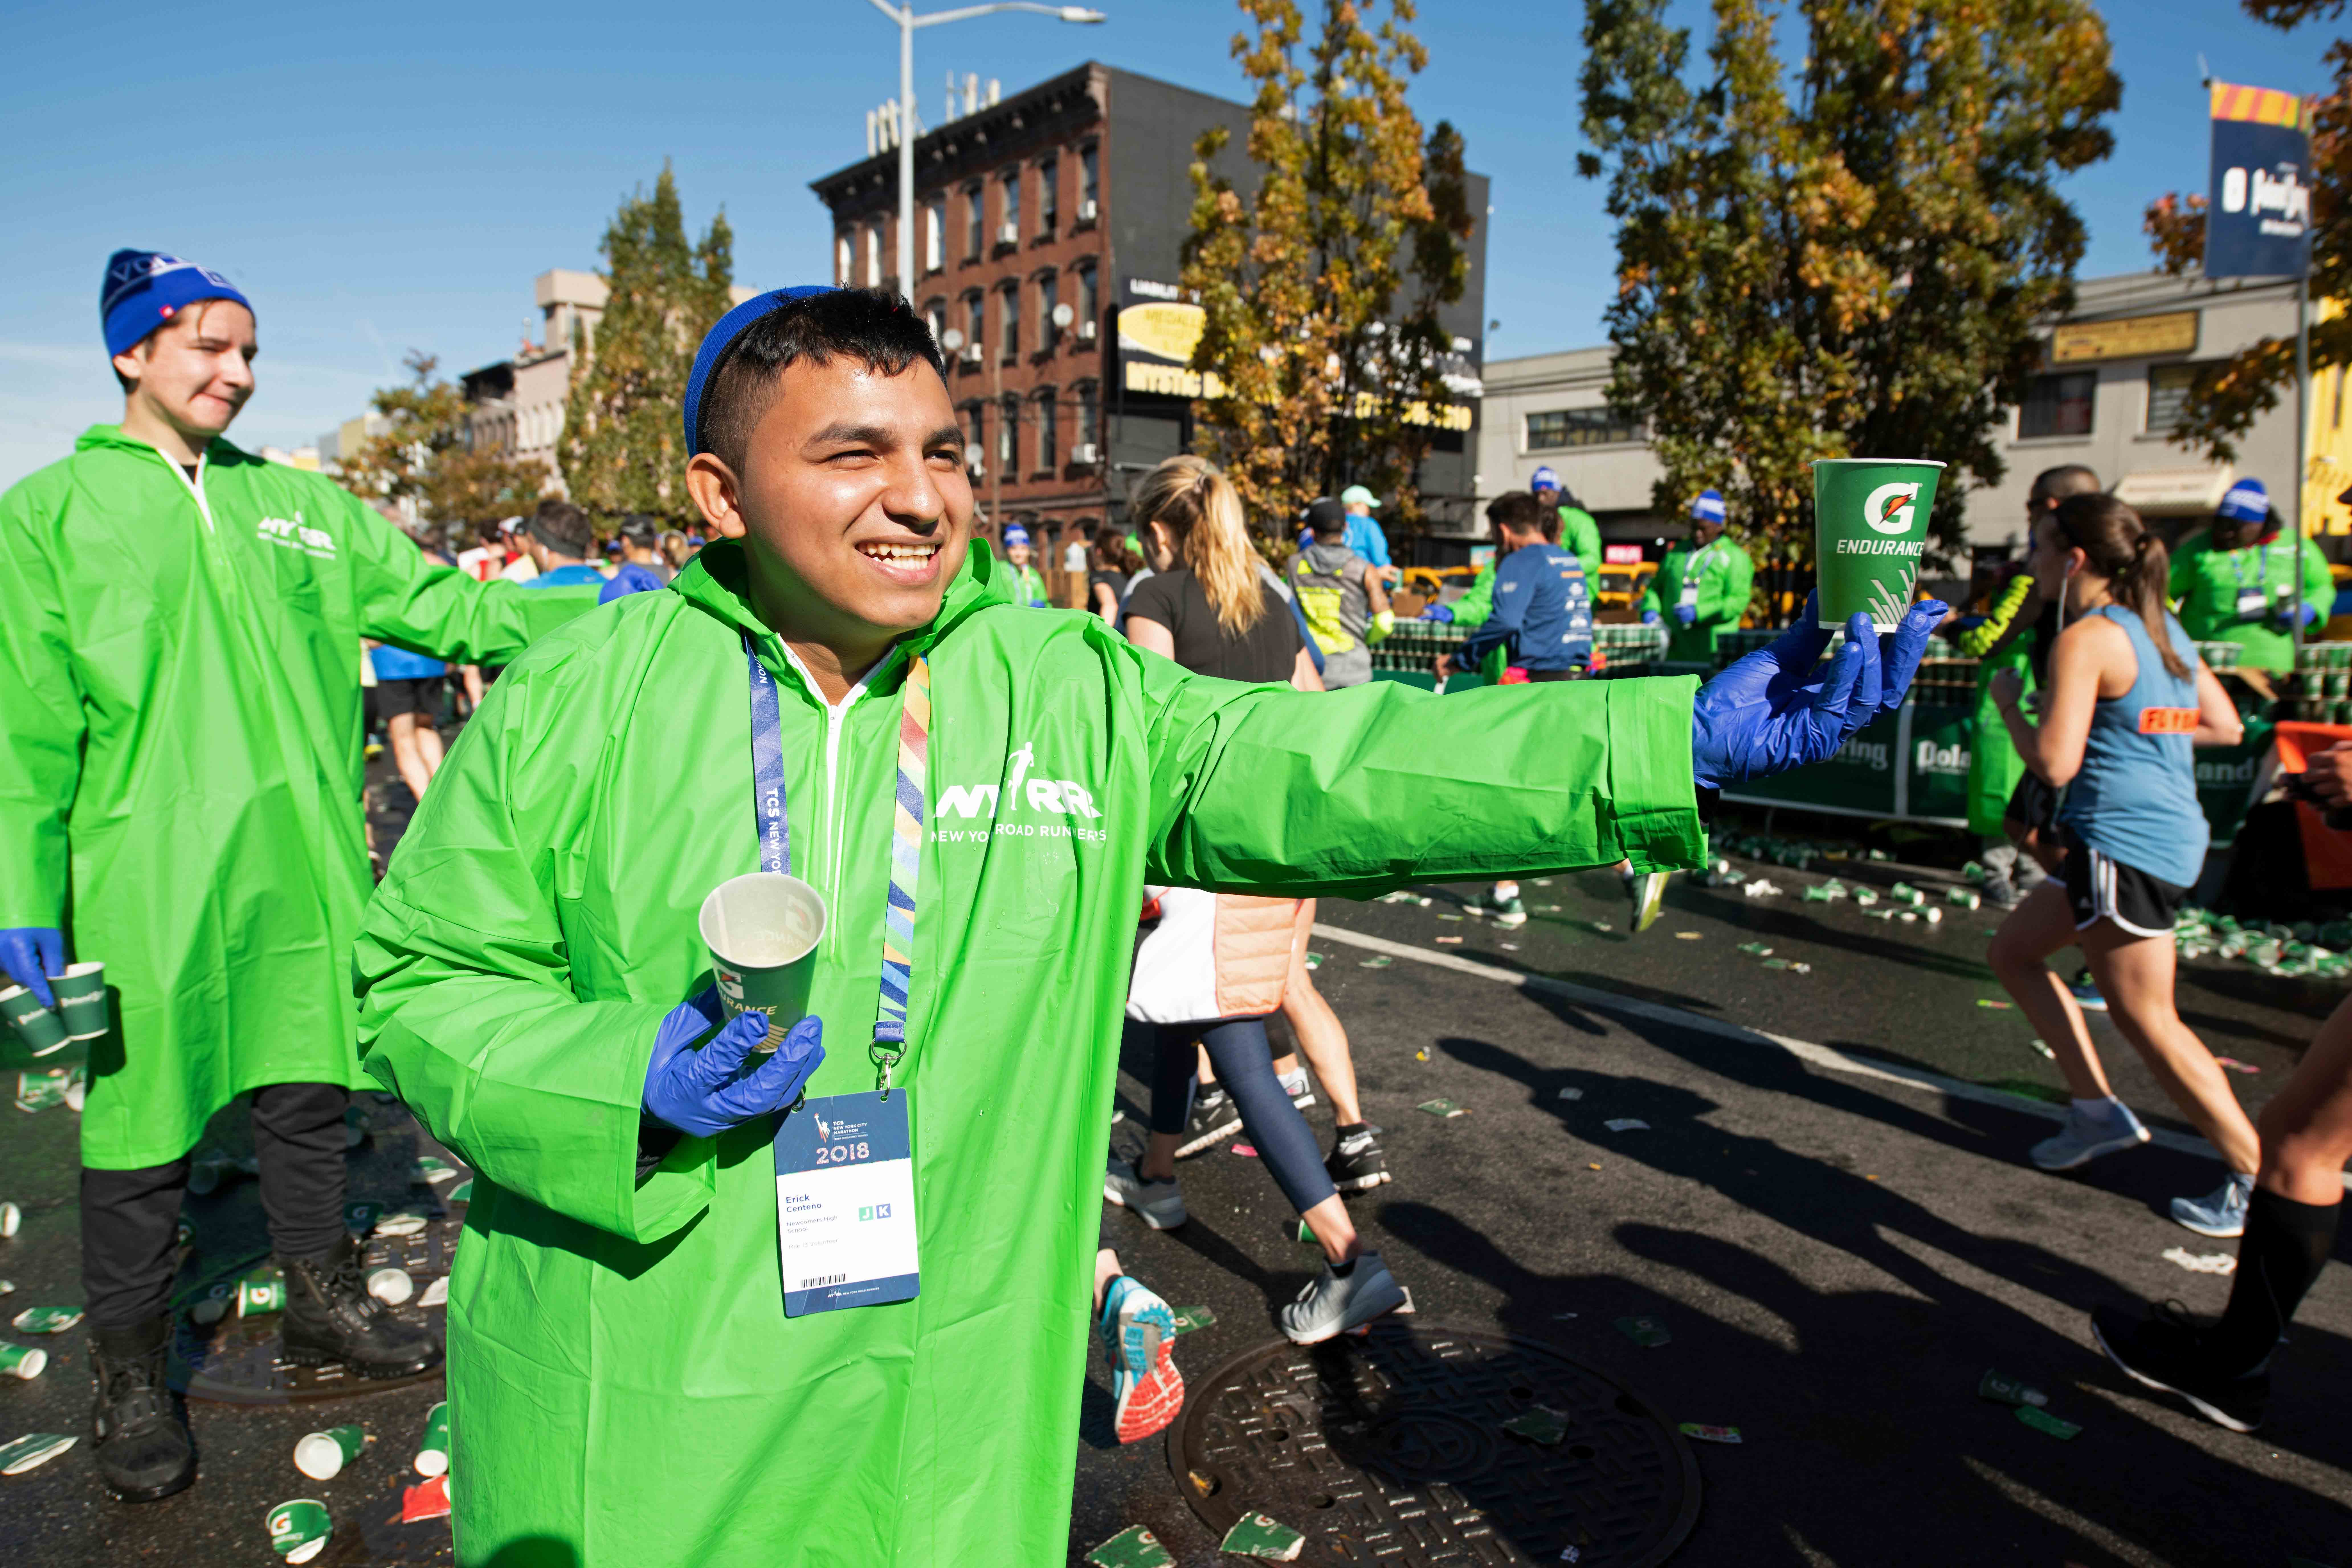 A TCS New York City Marathon volunteer holding out a Gatorade cup